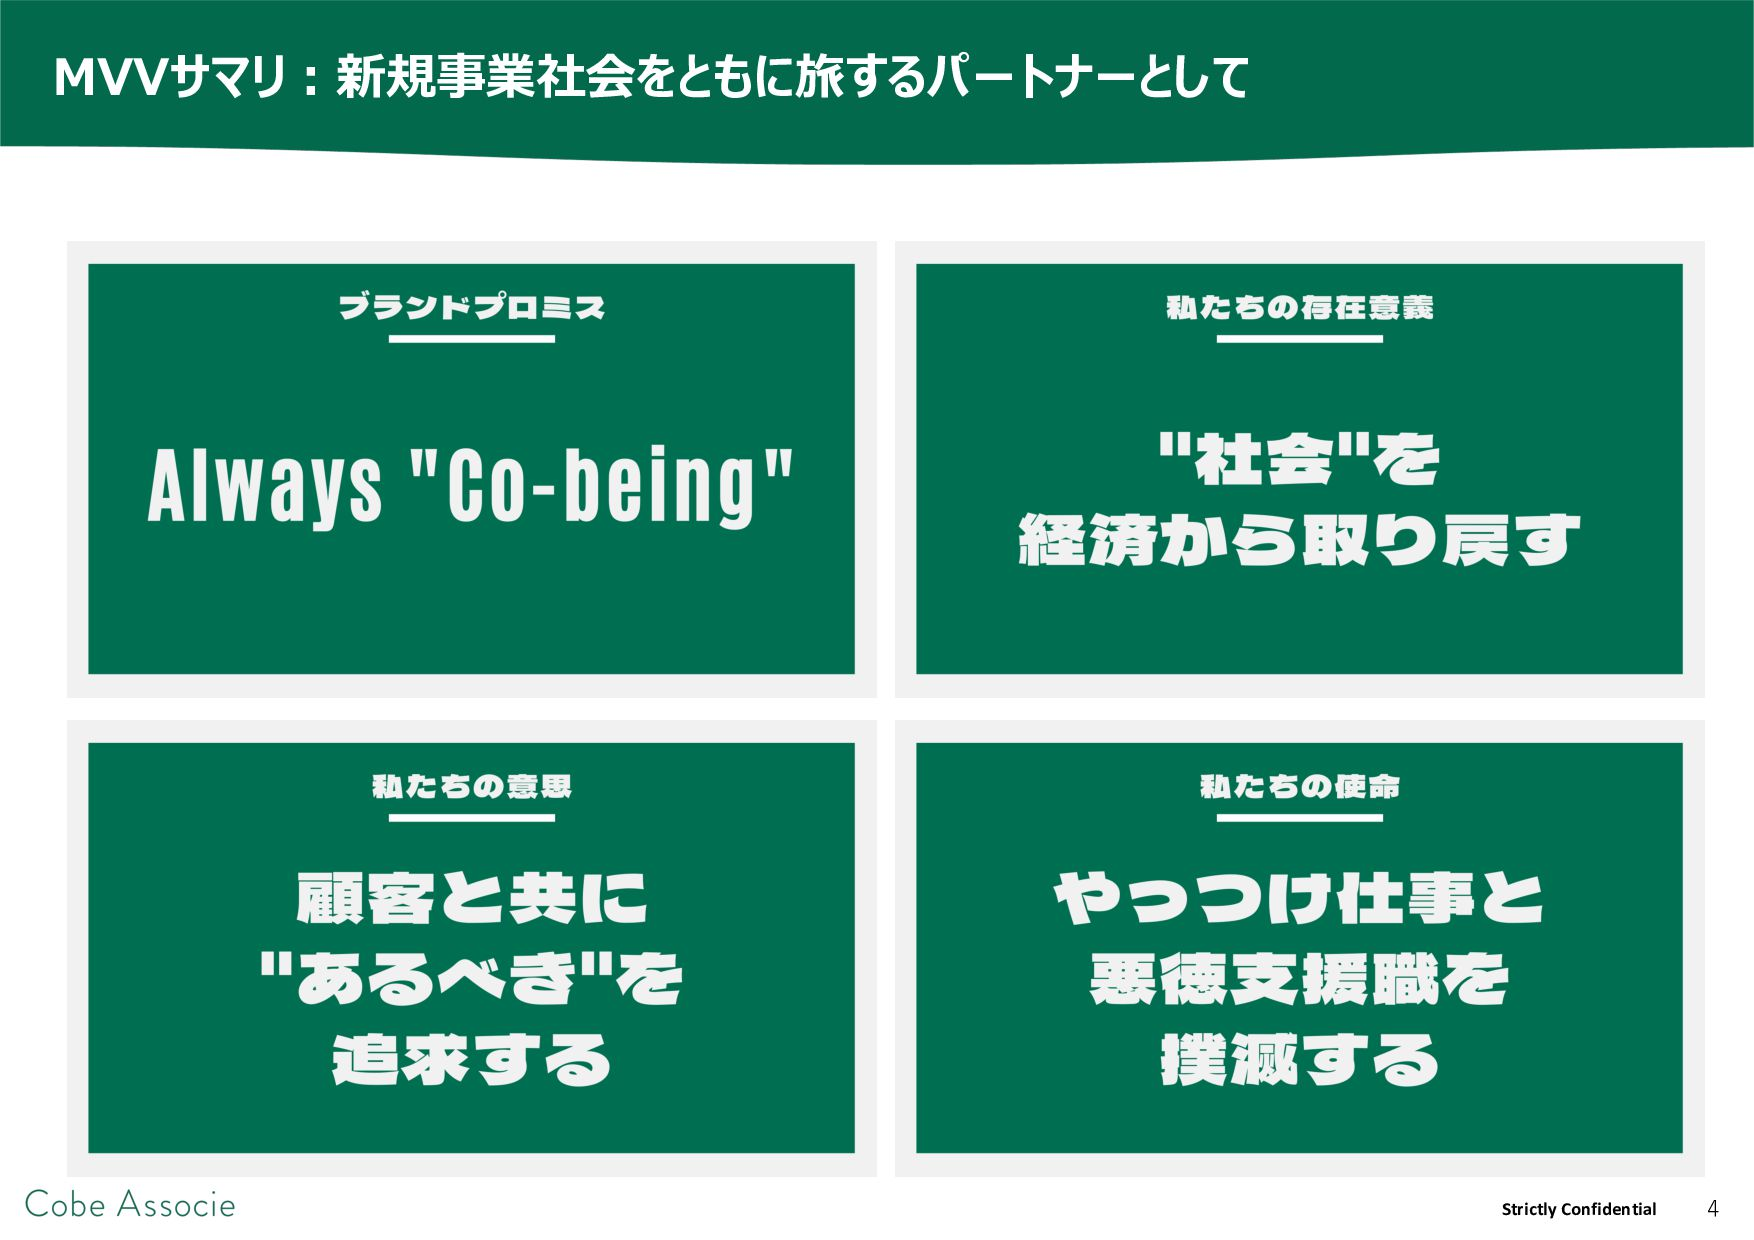 Strictly Confidential 2018年9月にCobe Associeを創業 4...